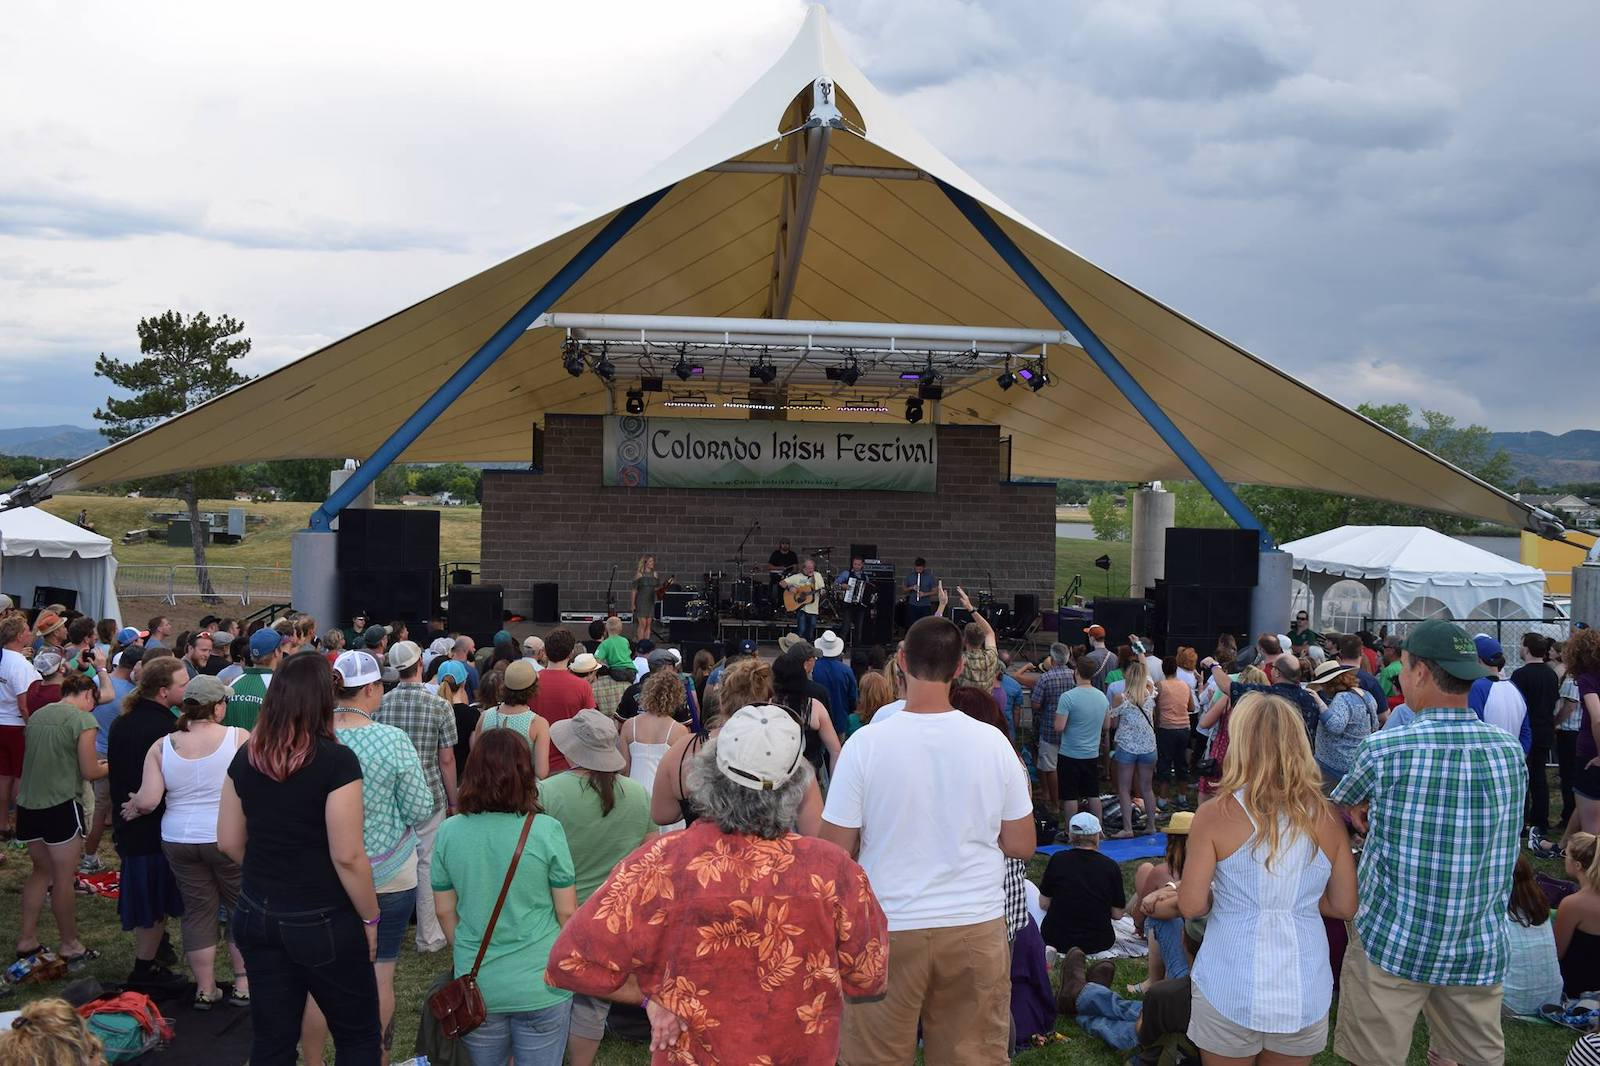 Image of the crowd at the Colorado Irish Festival in Littleton, CO